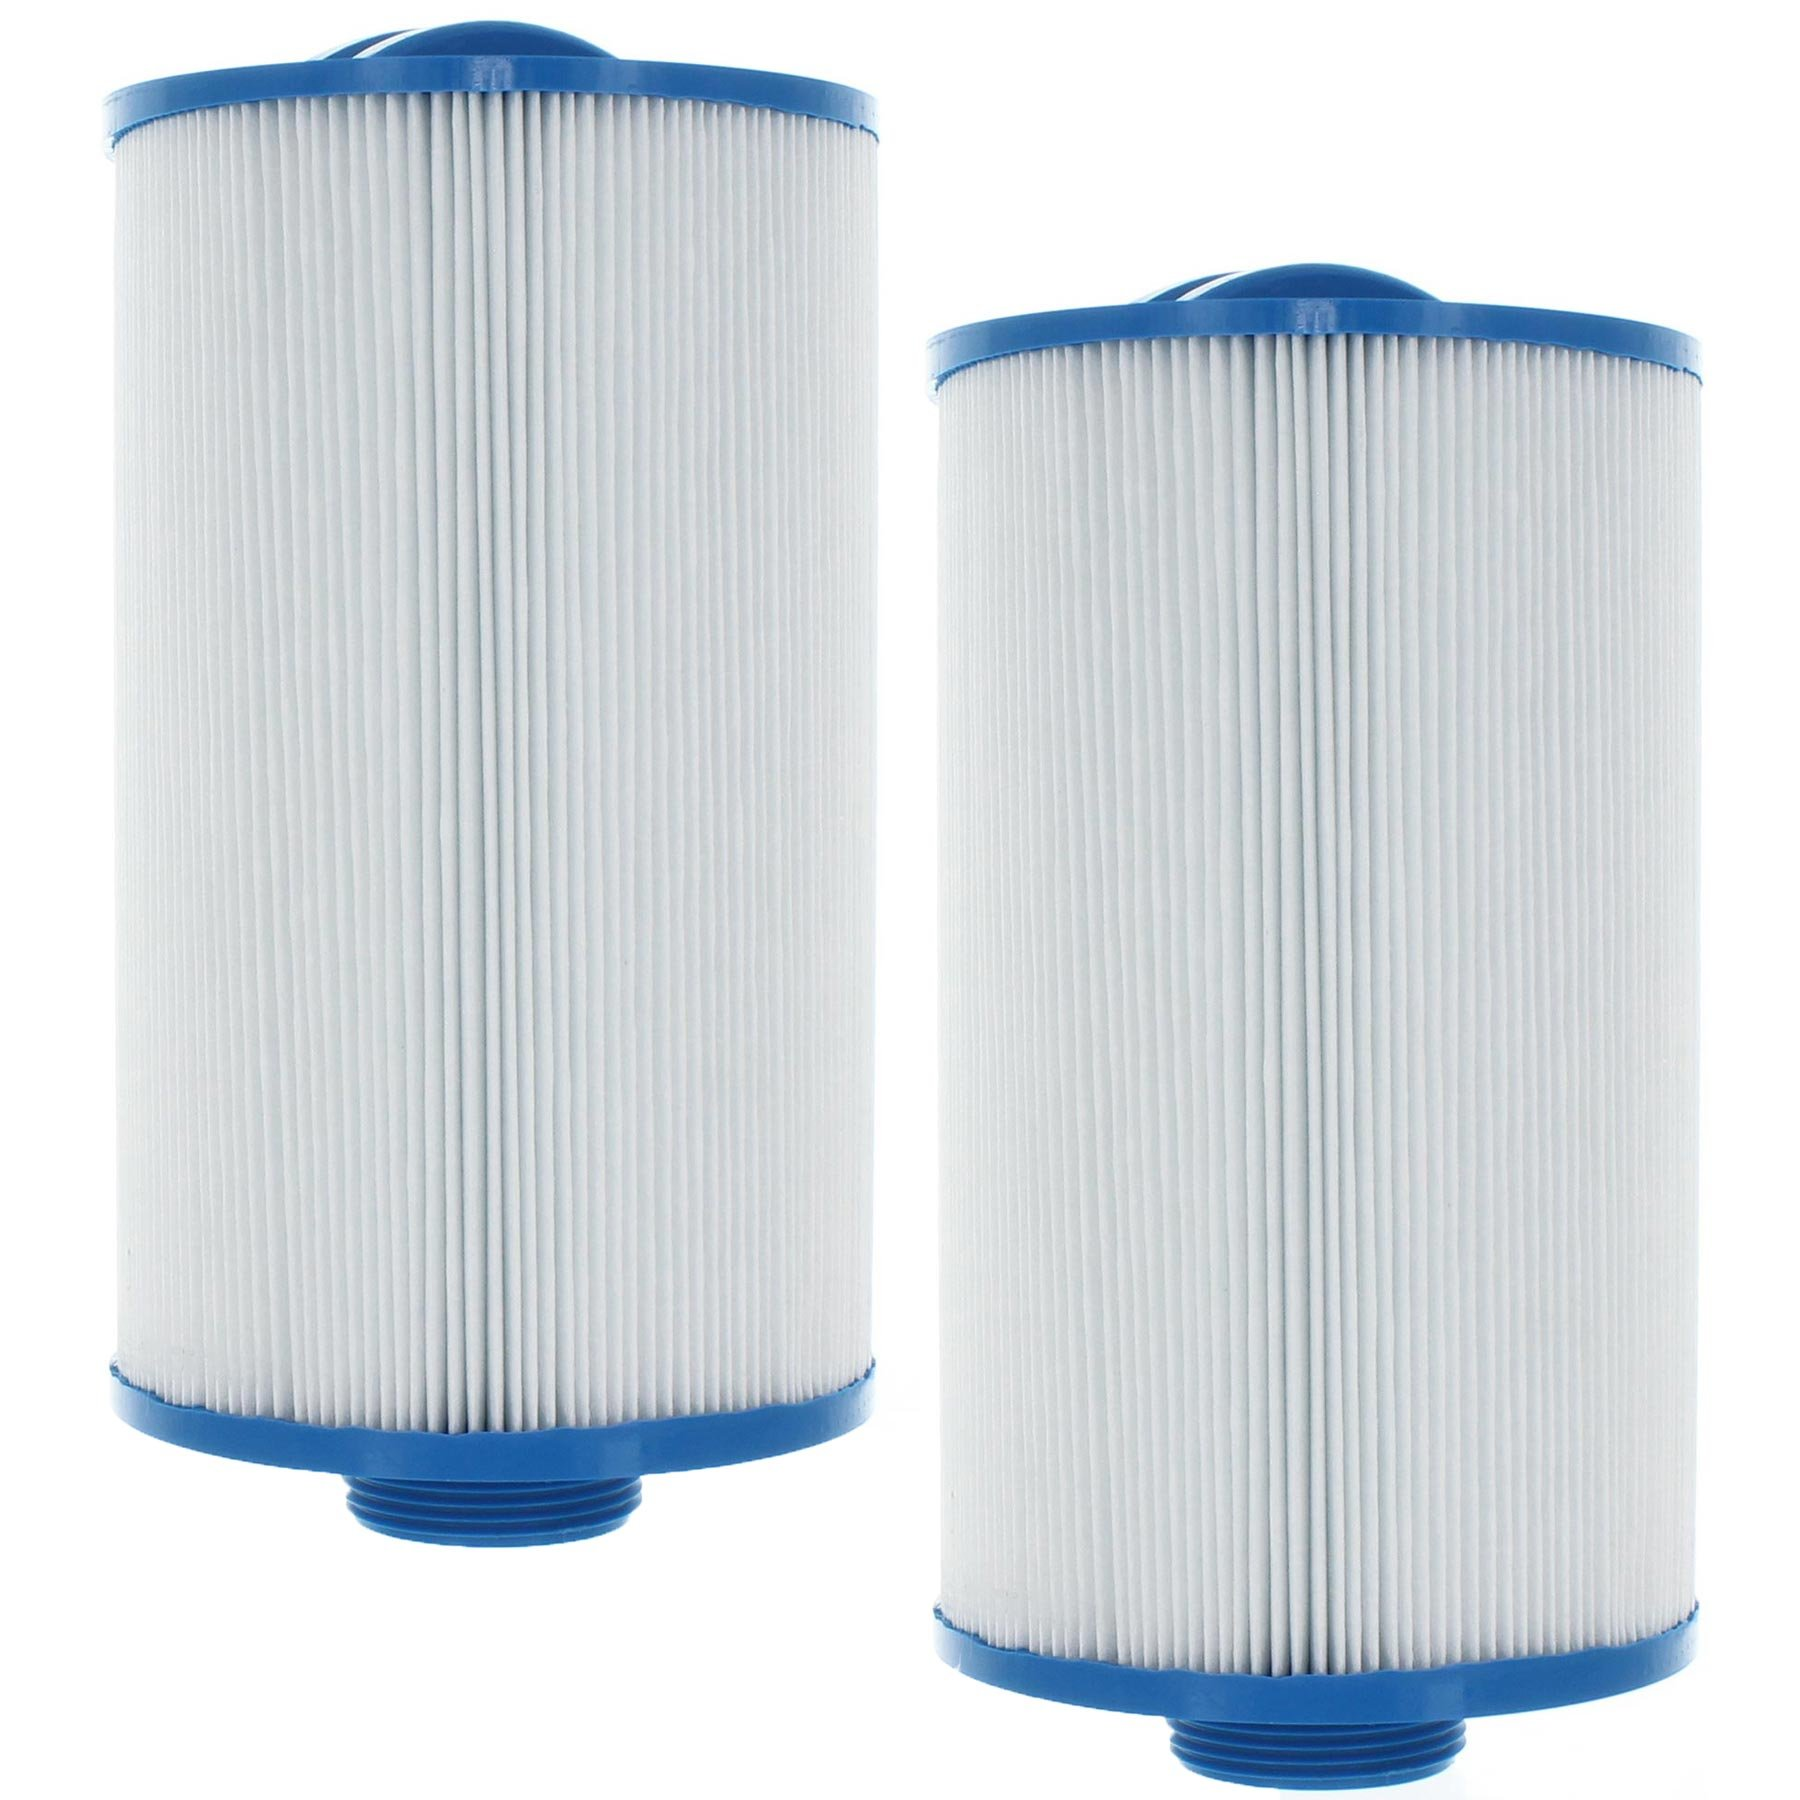 2 Guardian Pool Spa Filter Replaces PDM25P4 Dream Maker Gatsby SPA unicel 4CH-21 filbur FC-0136 by Guardian Filtration Products